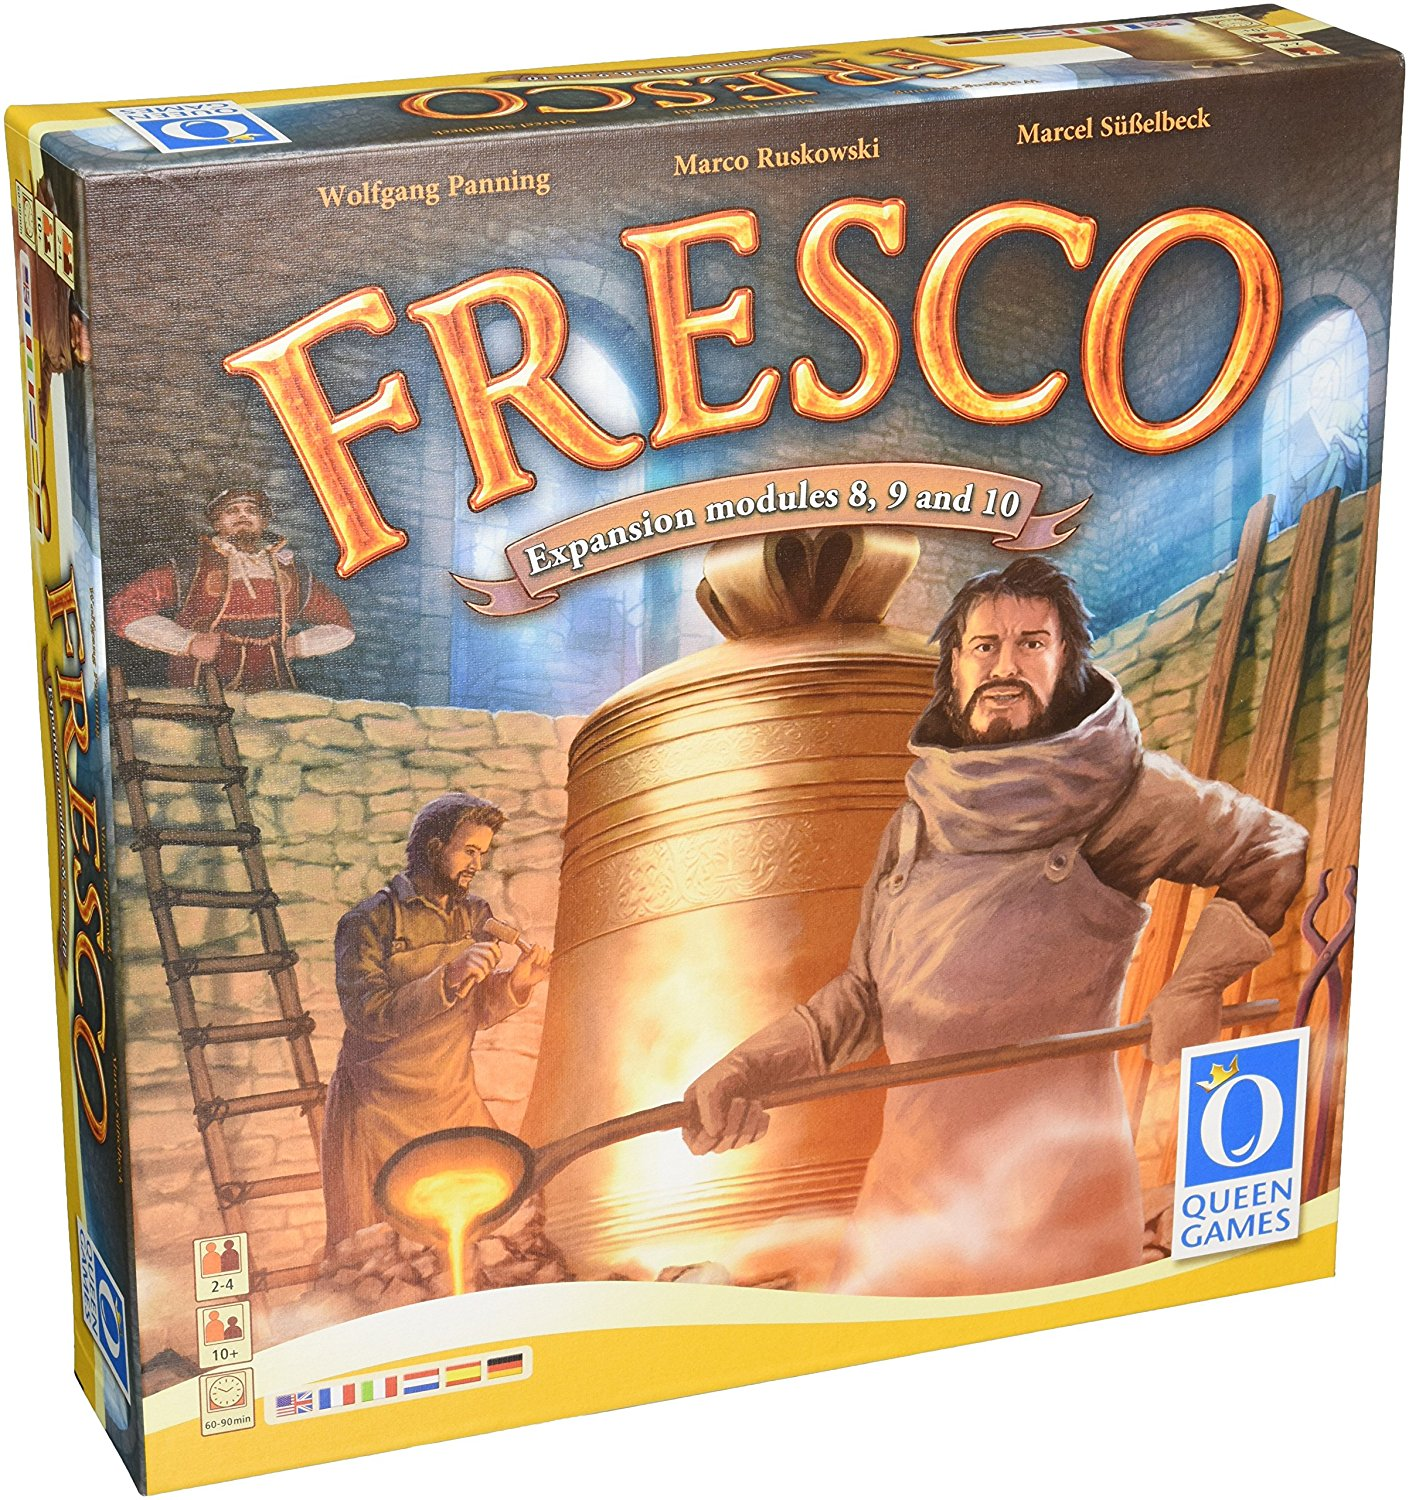 Fresco: Expansion Modules 8, 9 & 10